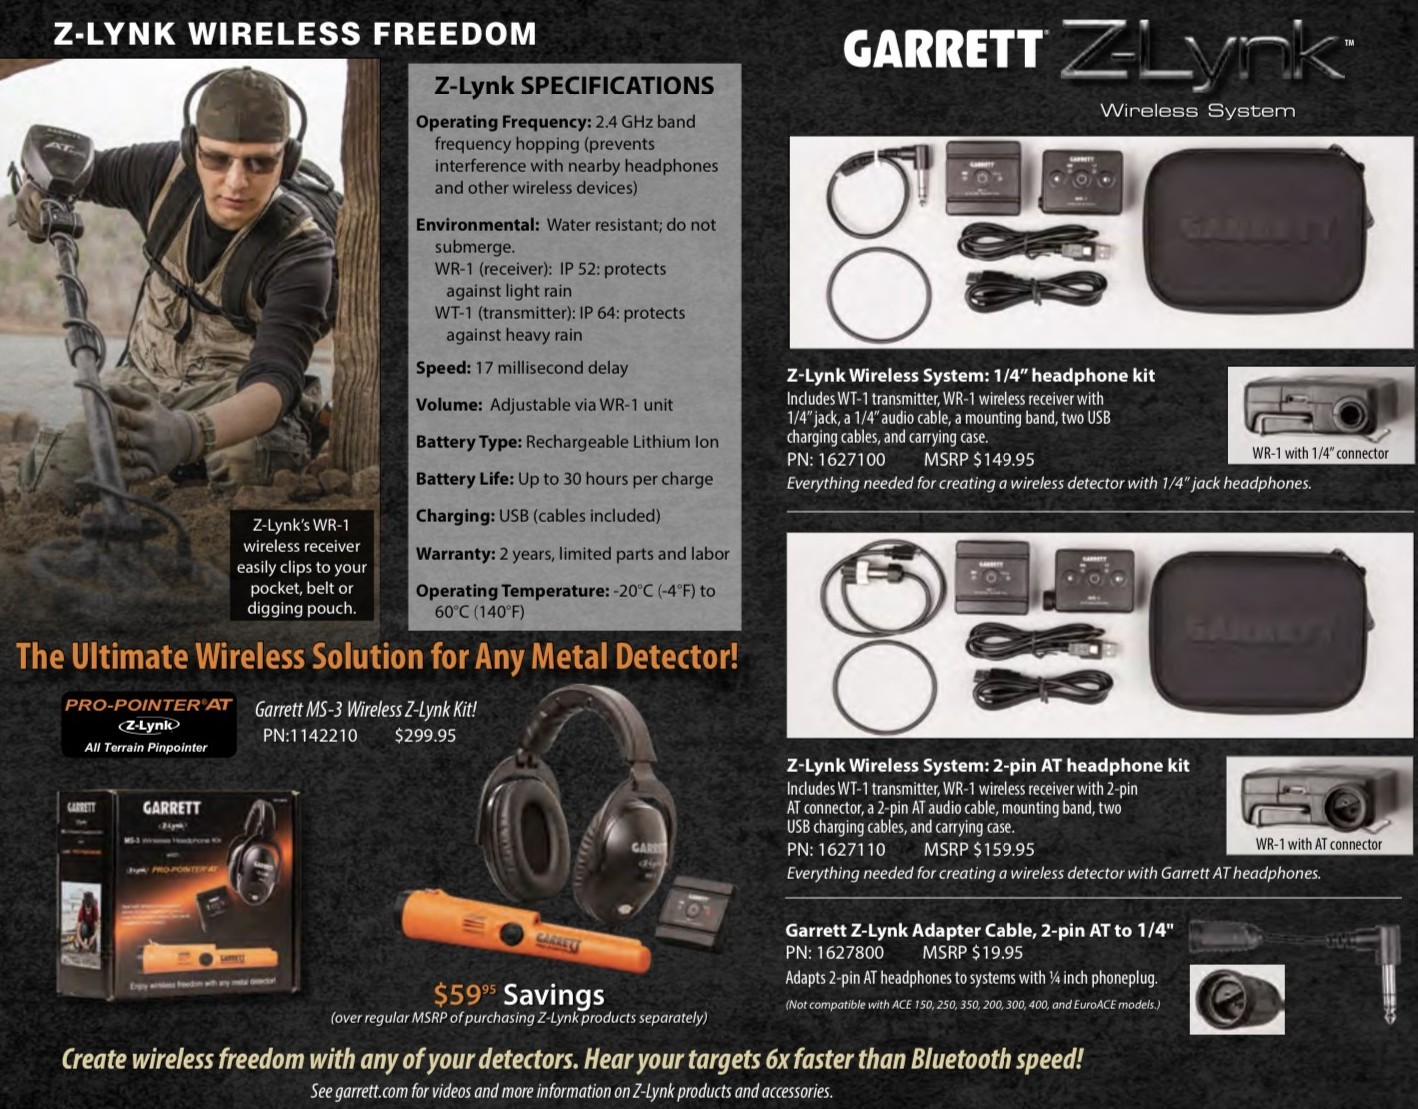 garrett-z-lynk-wireless-system-1.jpg